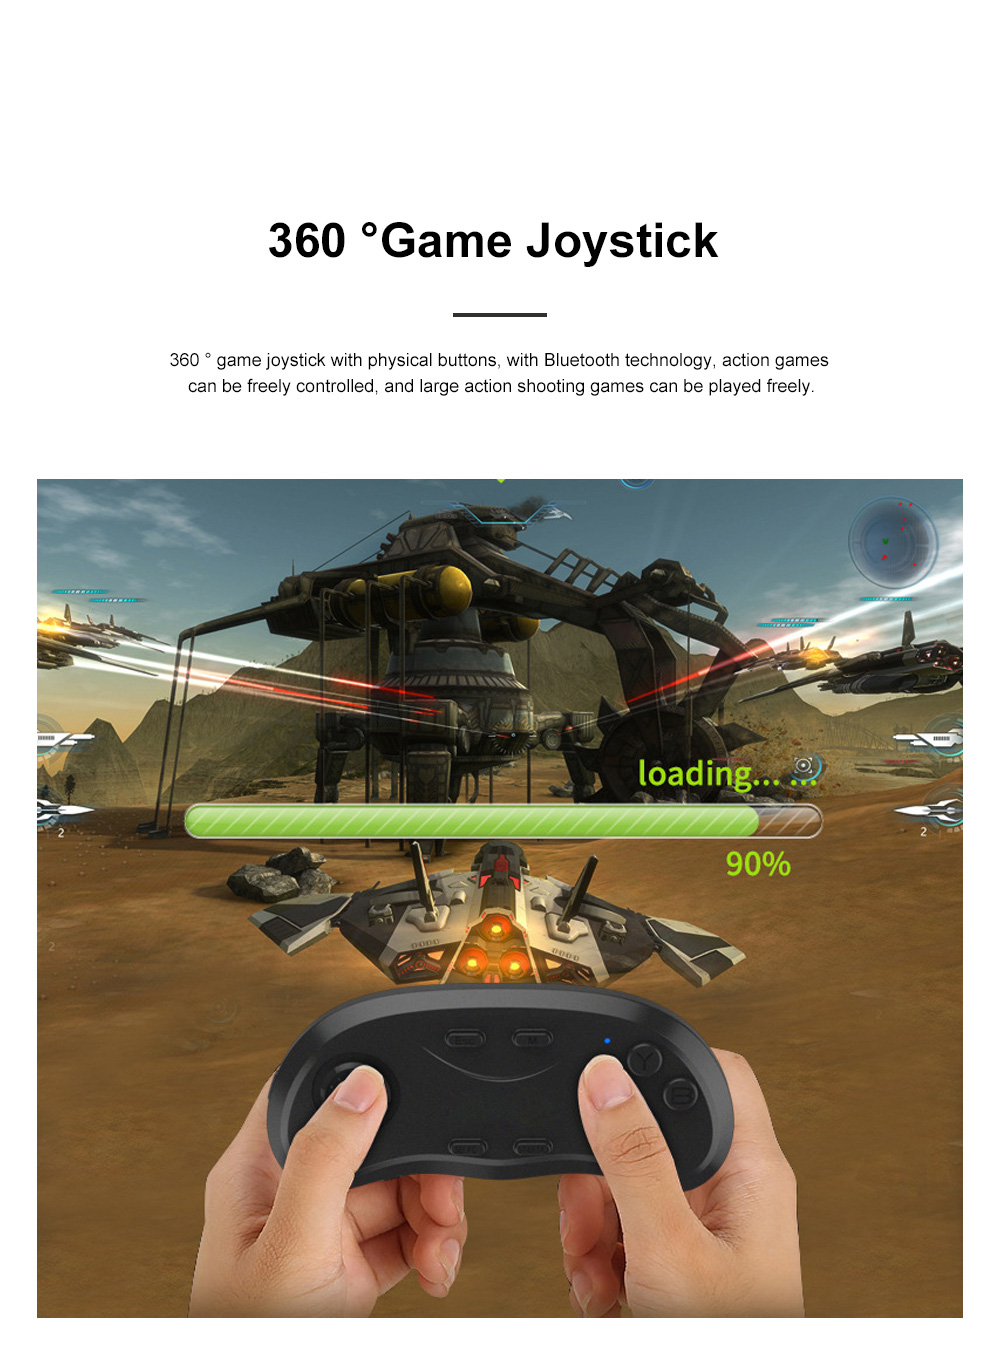 Wireless Bluetooth Game Controller with 360°Joystick Intelligent Remote Game Controller Handle Compatible with Android IOS PC 1